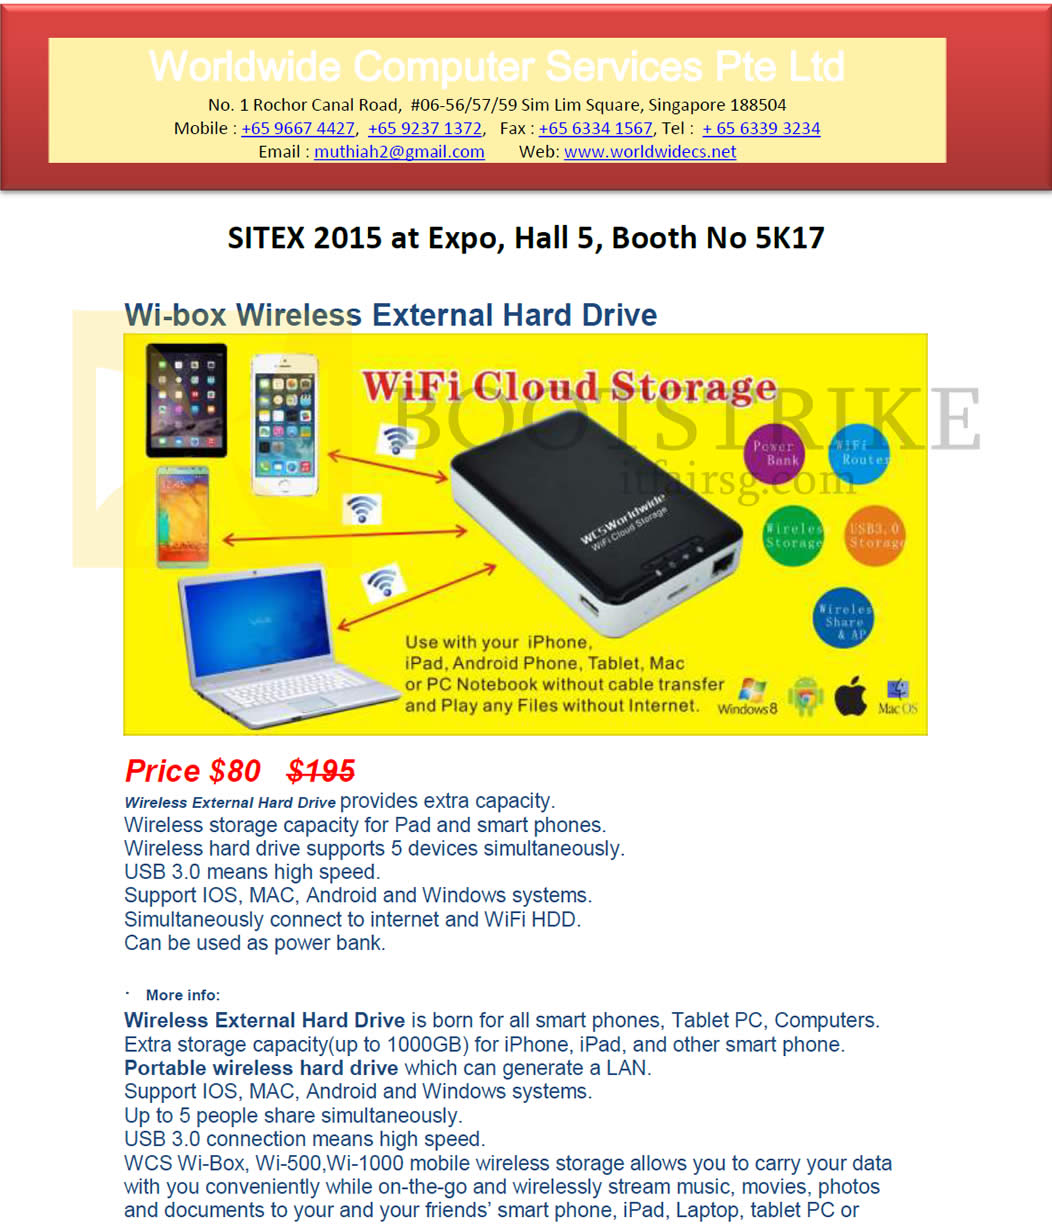 SITEX 2015 price list image brochure of Worldwide Computer Services Wifi Cloud Storage Page 2